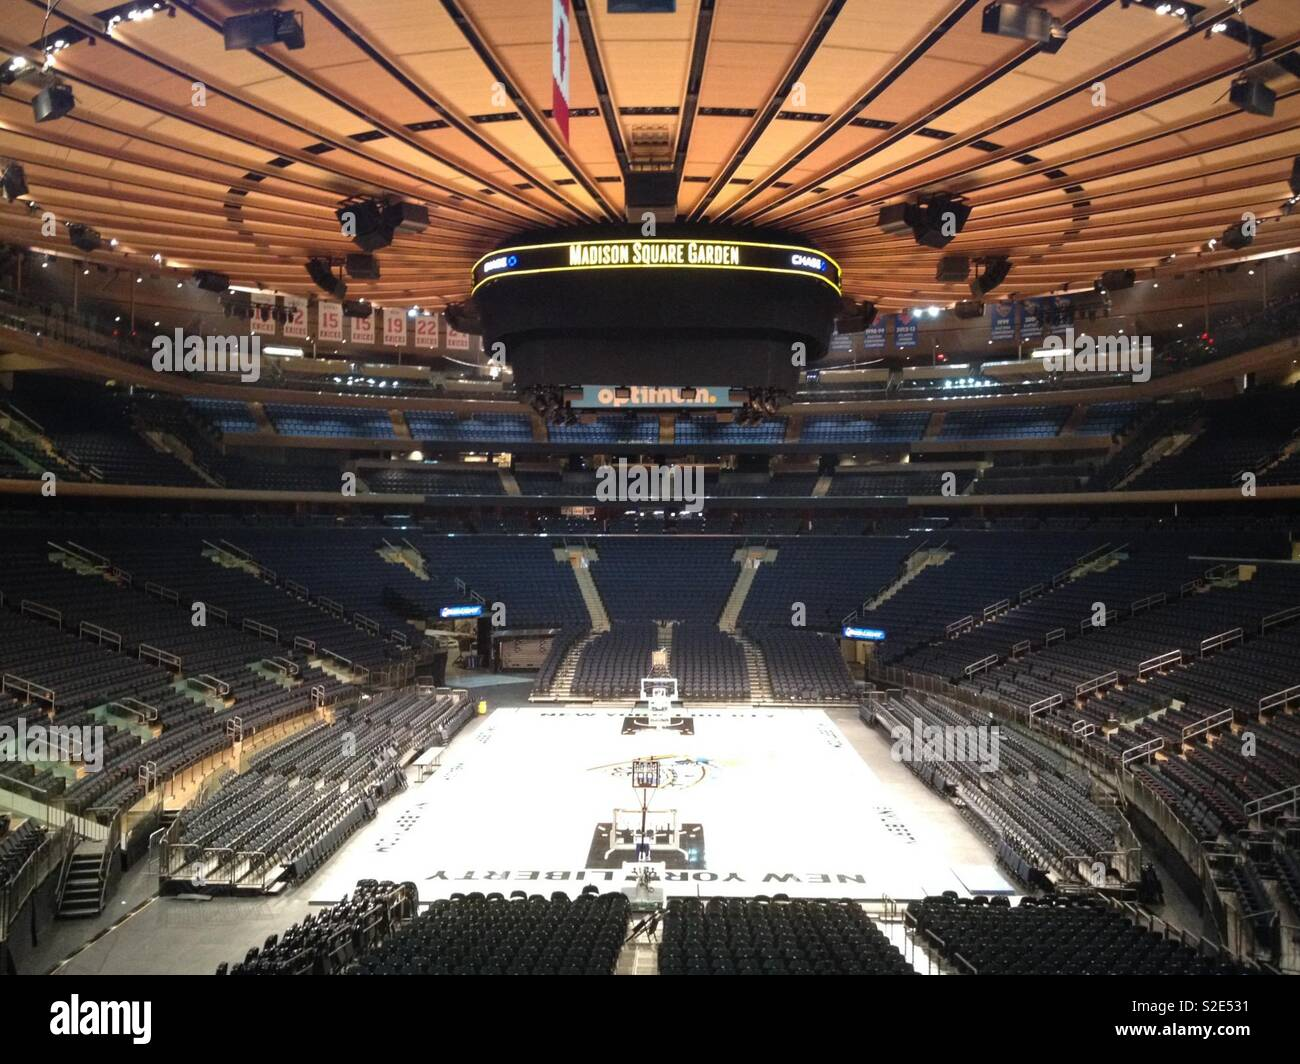 The inside arena at Madison Square Garden Stock Photo - Alamy